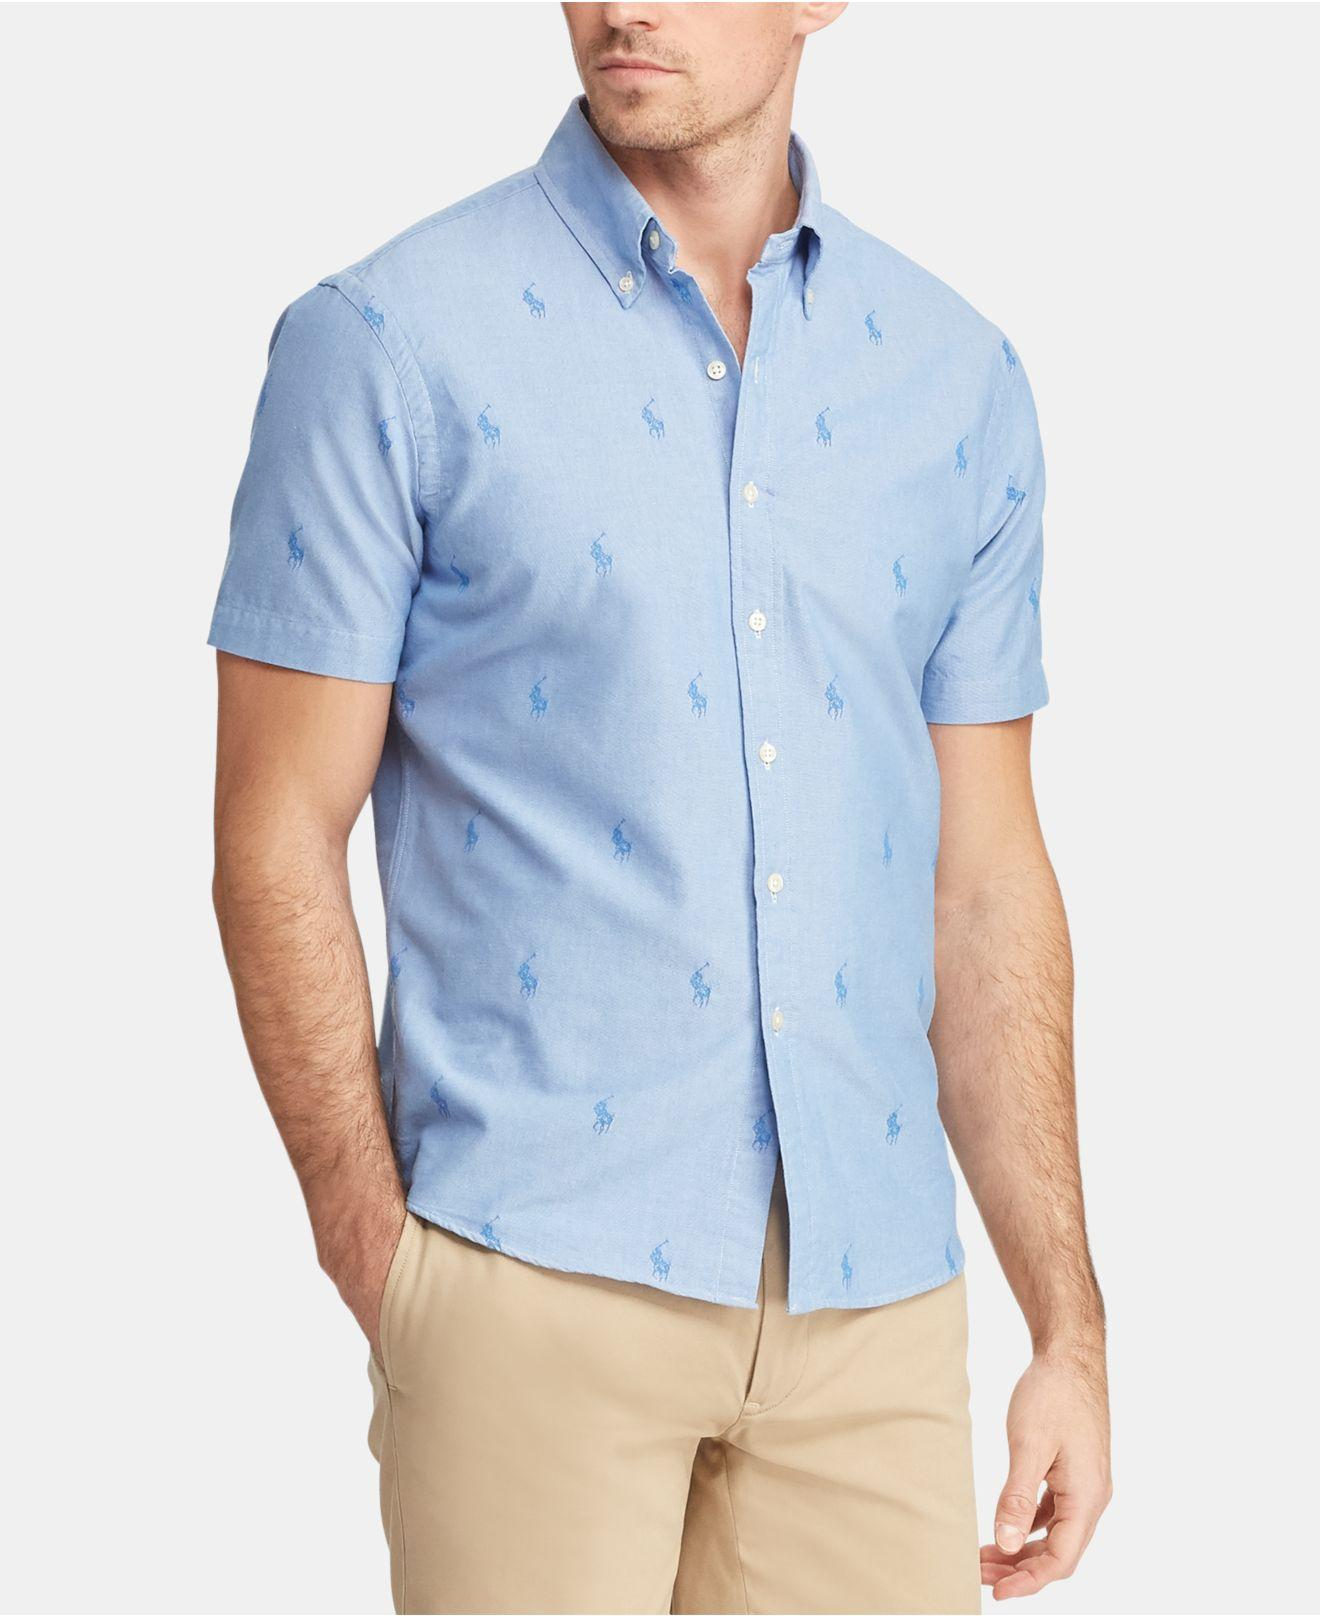 6b76c077d Polo Ralph Lauren Classic-fit Pony Shirt in Blue for Men - Lyst